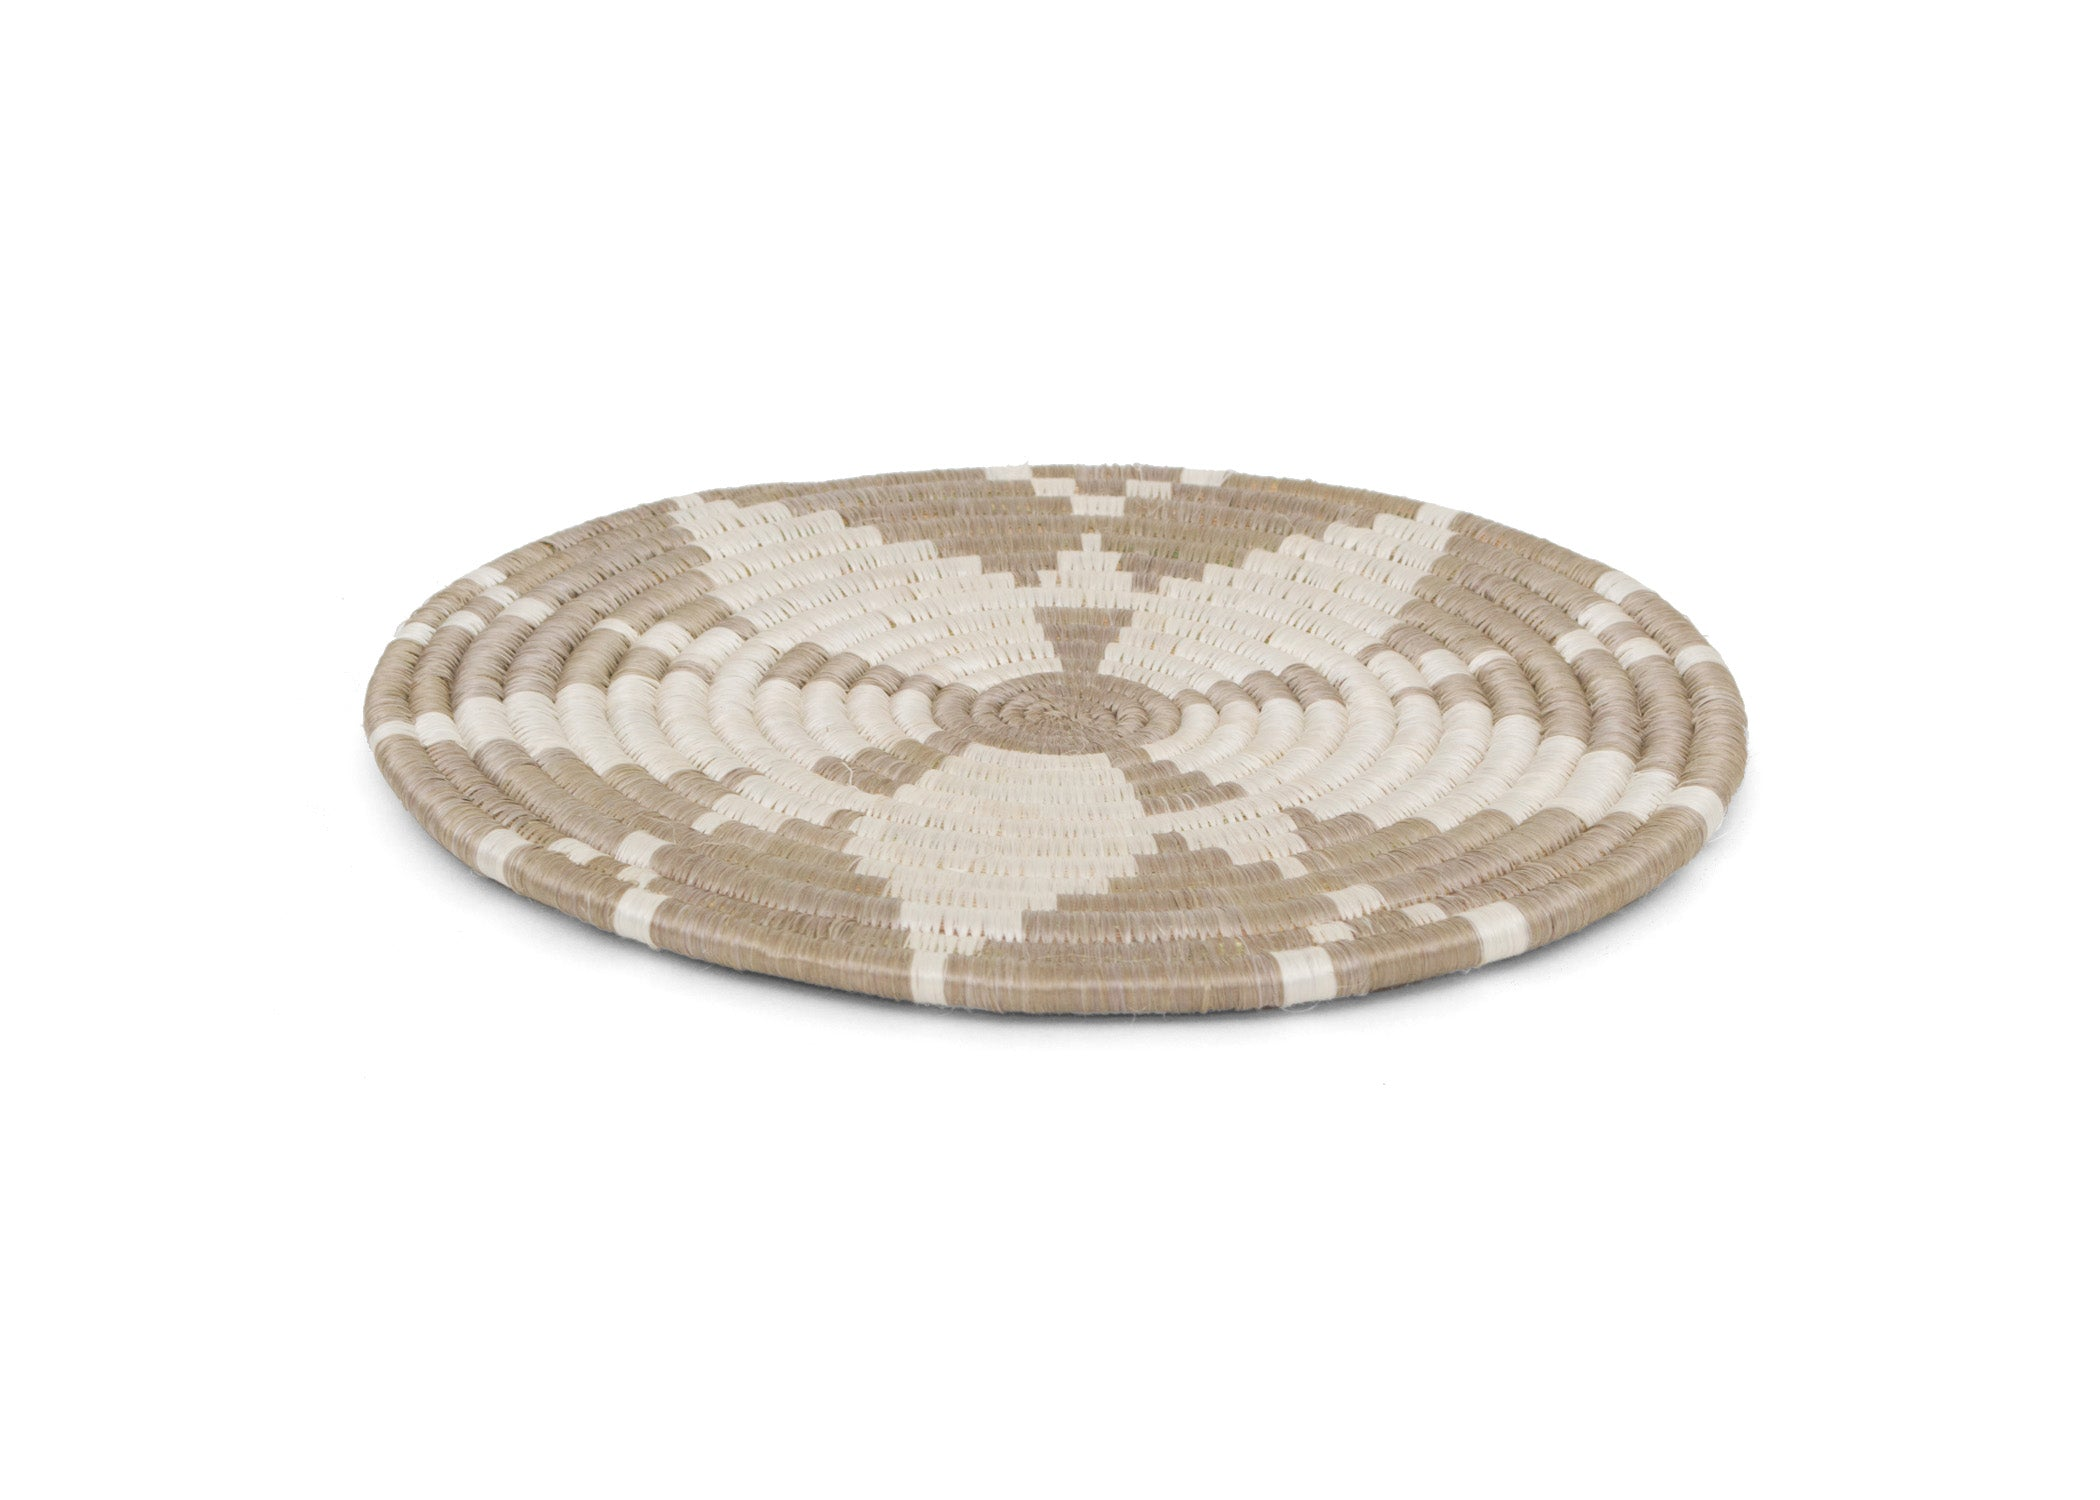 Sandstorm Hope Trivet - KAZI - Artisan made high quality home decor and wall art